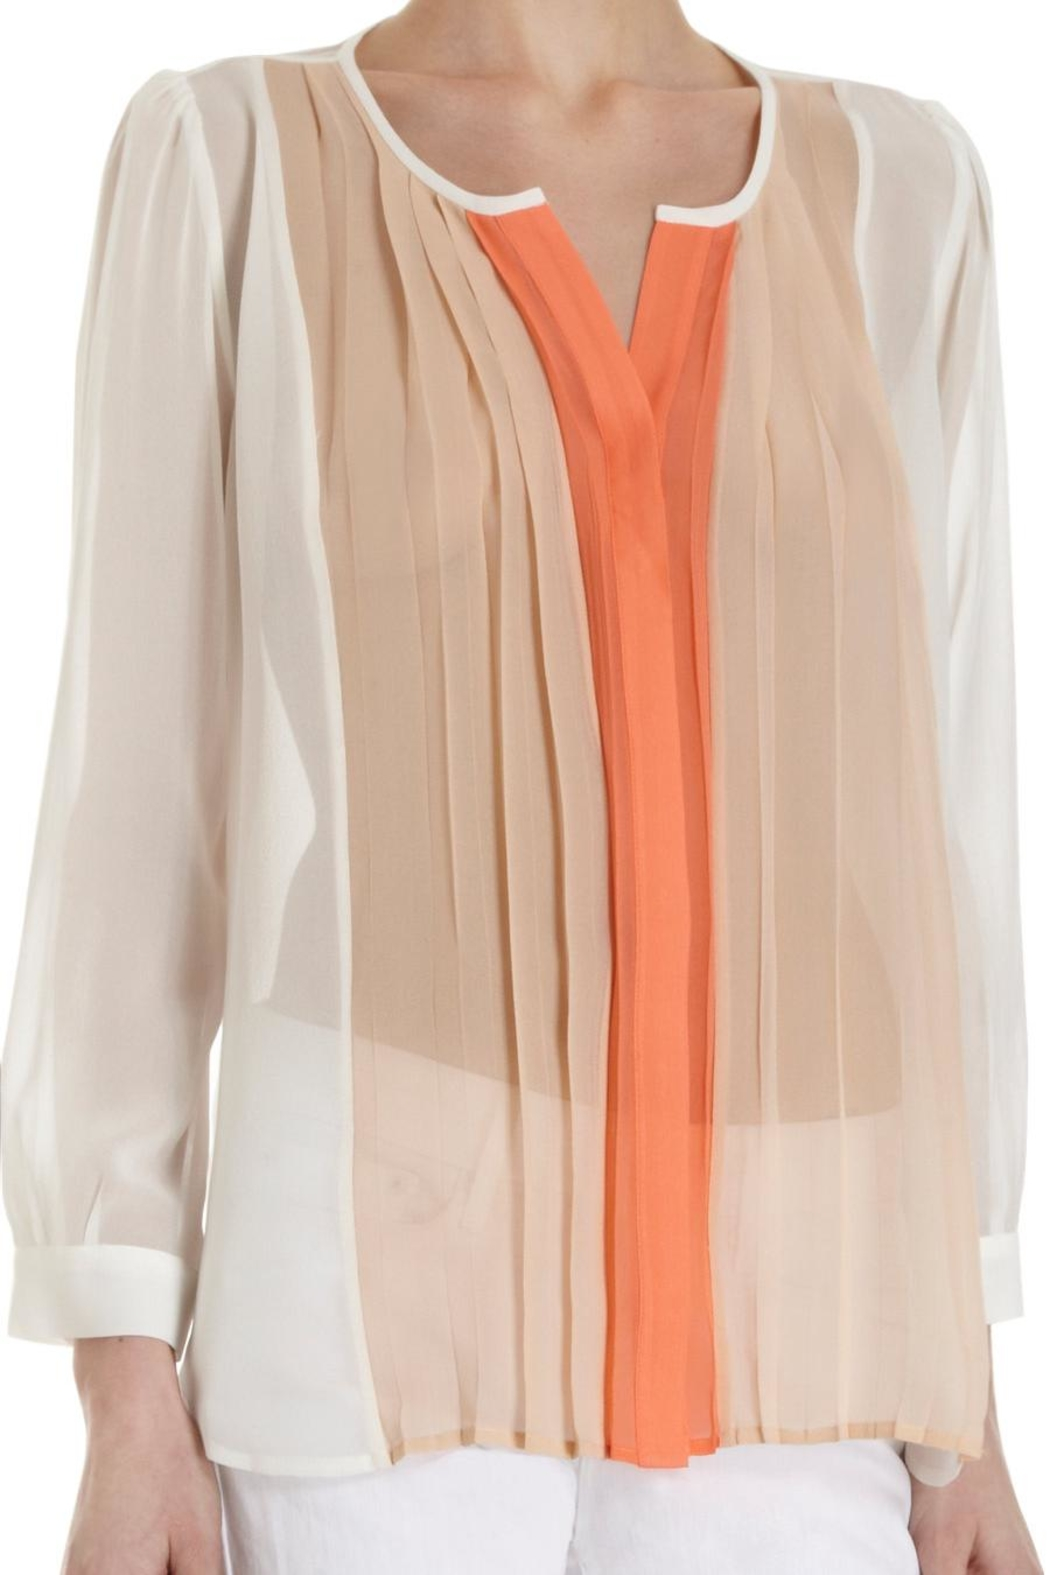 Joie Sinden Ombre Blouse - Back Cropped Image